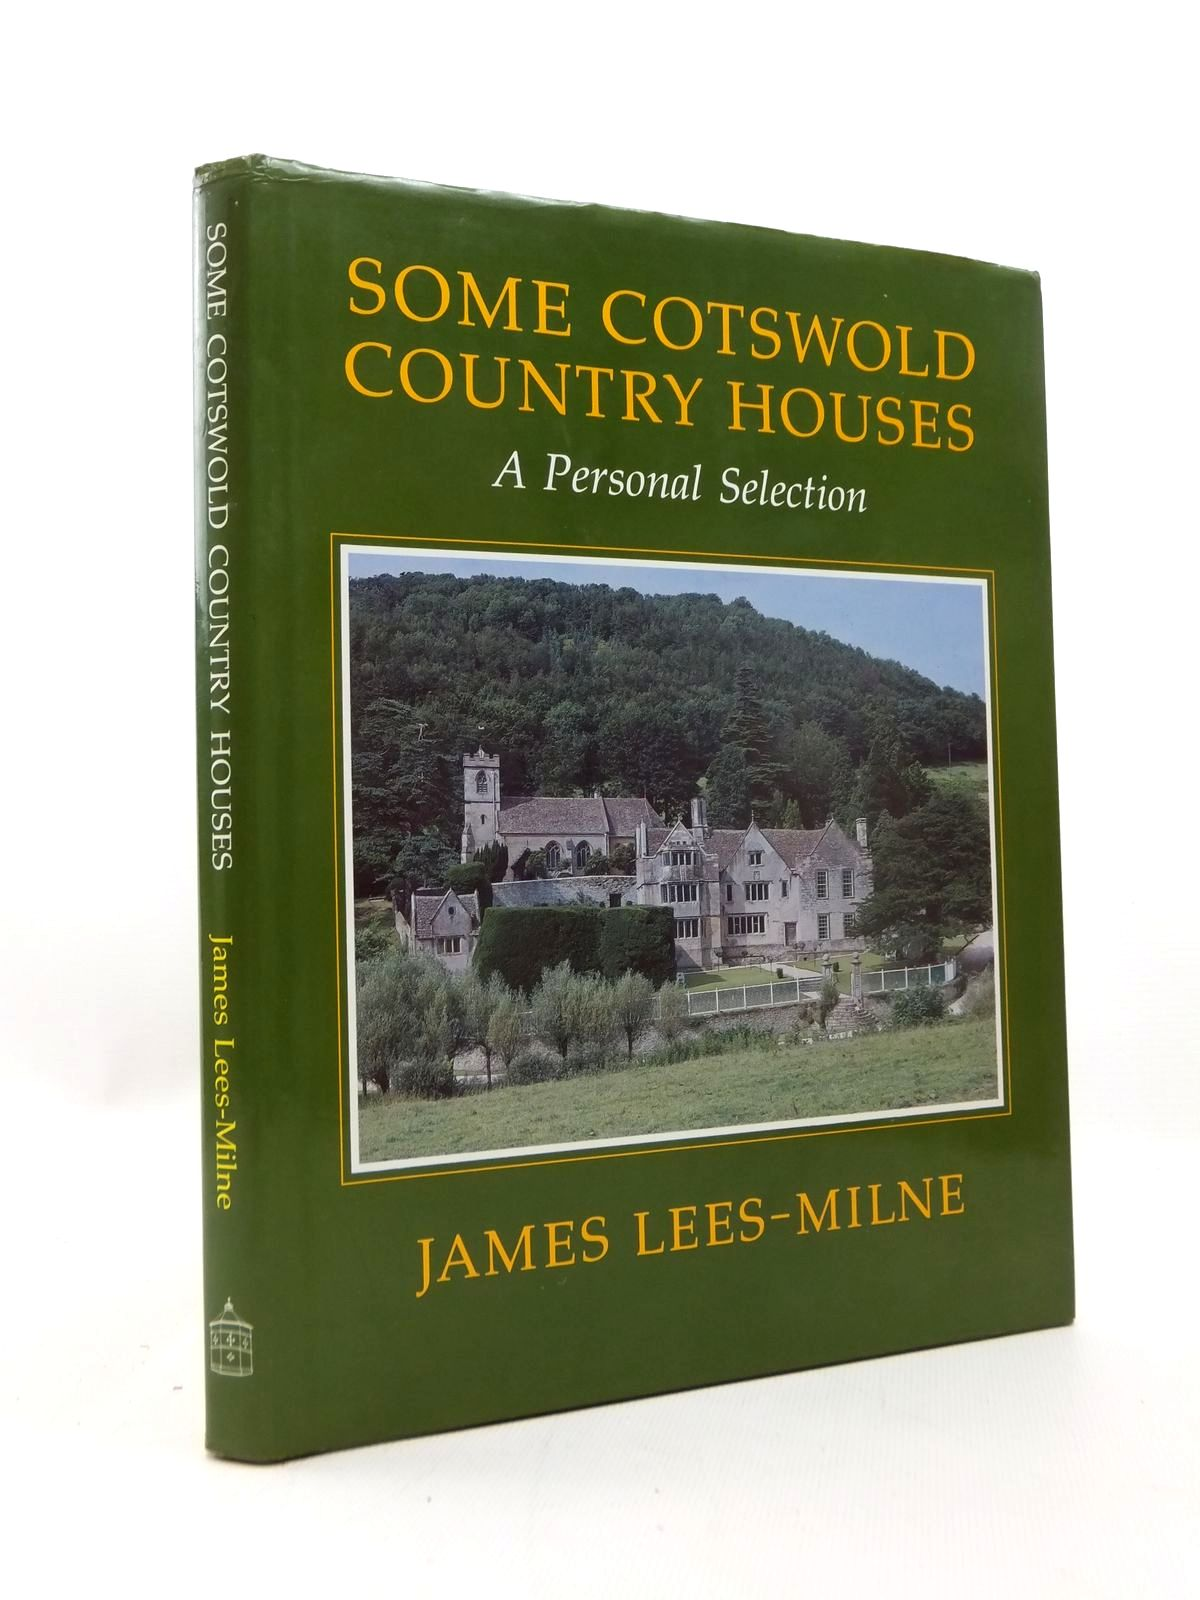 Photo of SOME COTSWOLD COUNTRY HOUSES written by Lees-Milne, James published by Dovecote Press (STOCK CODE: 1208847)  for sale by Stella & Rose's Books